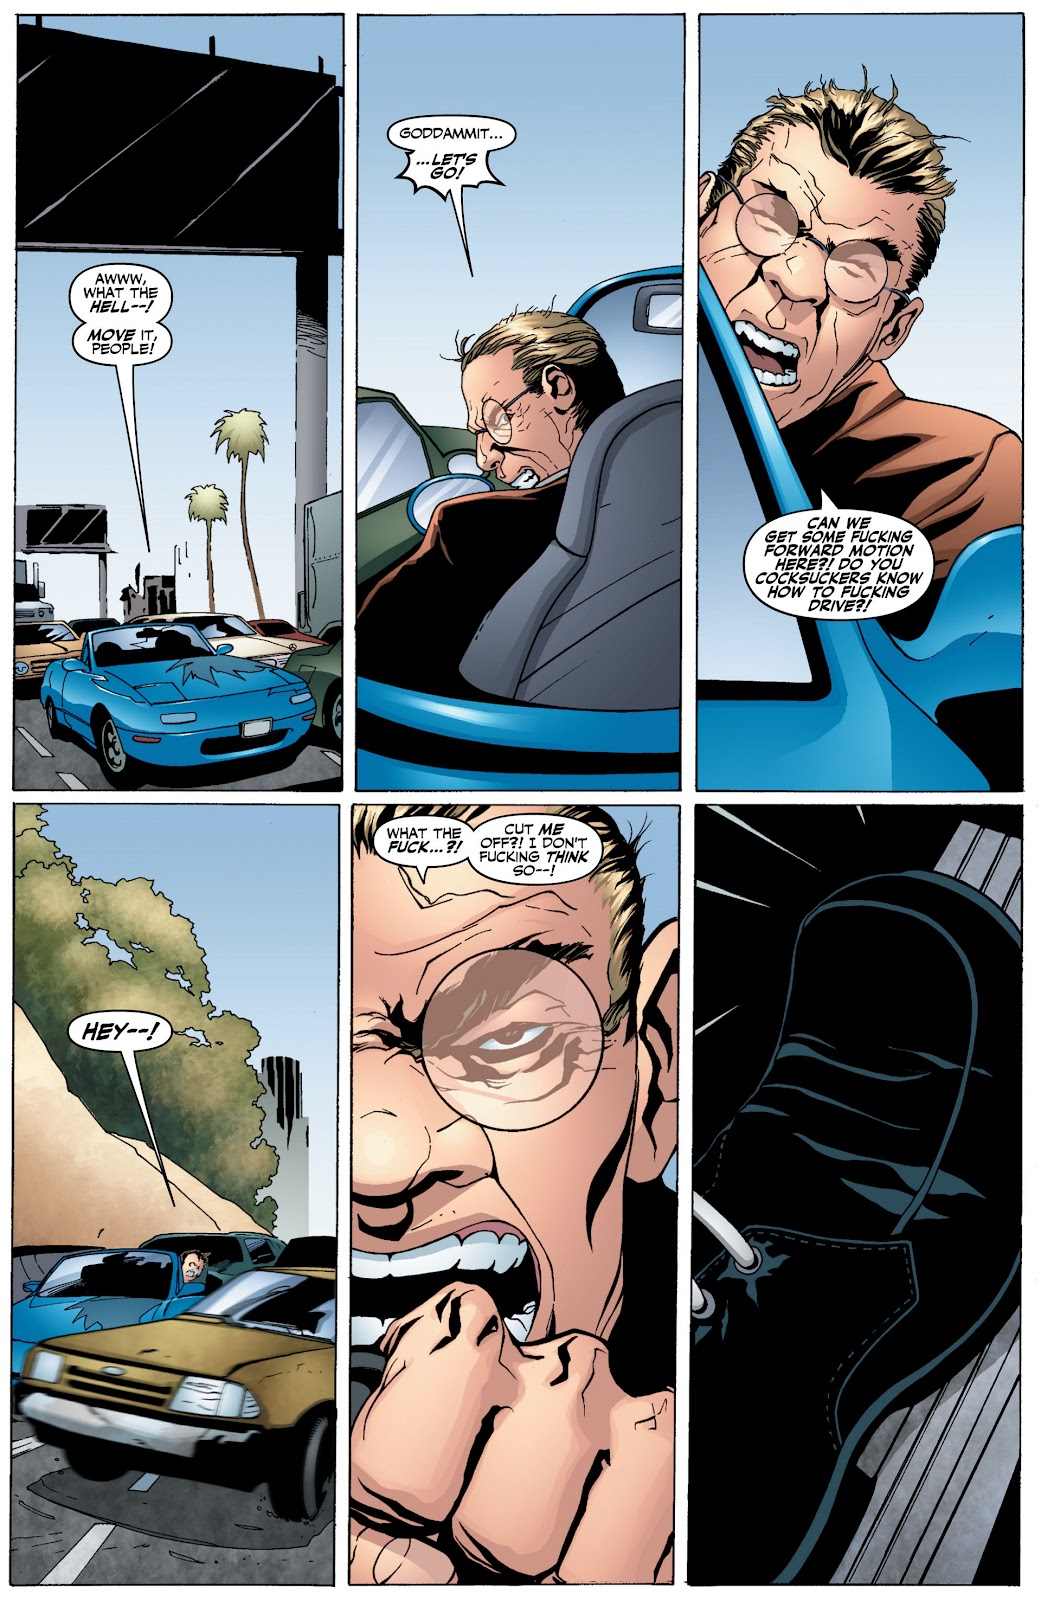 Wildcats Version 3.0 Issue #11 #11 - English 9